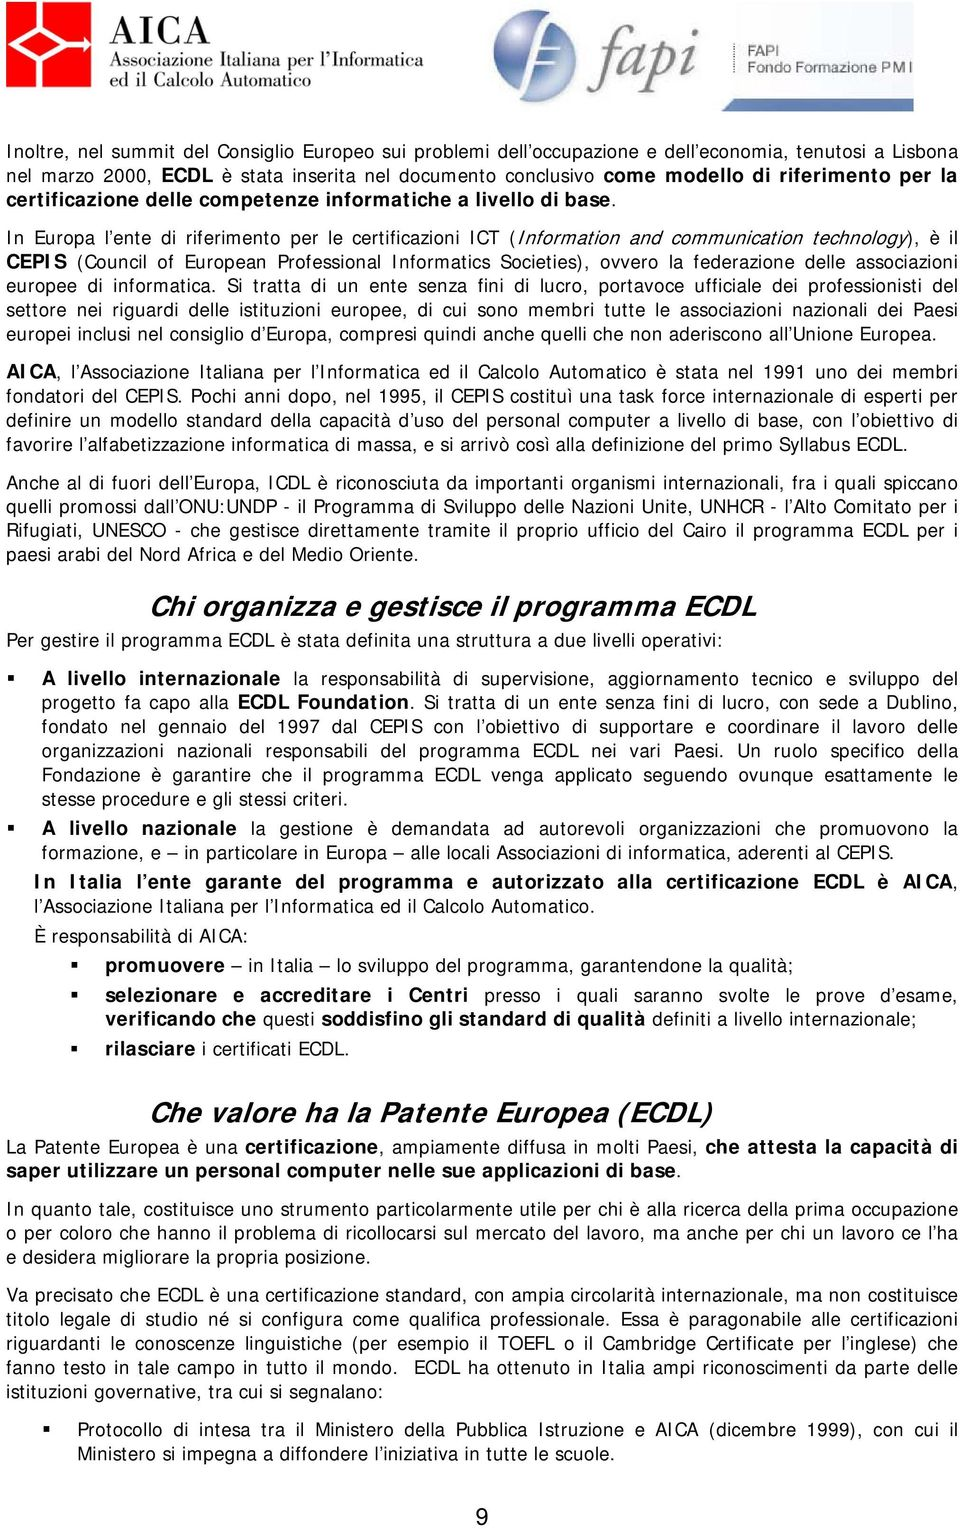 In Europa l ente di riferimento per le certificazioni ICT (Information and communication technology), è il CEPIS (Council of European Professional Informatics Societies), ovvero la federazione delle